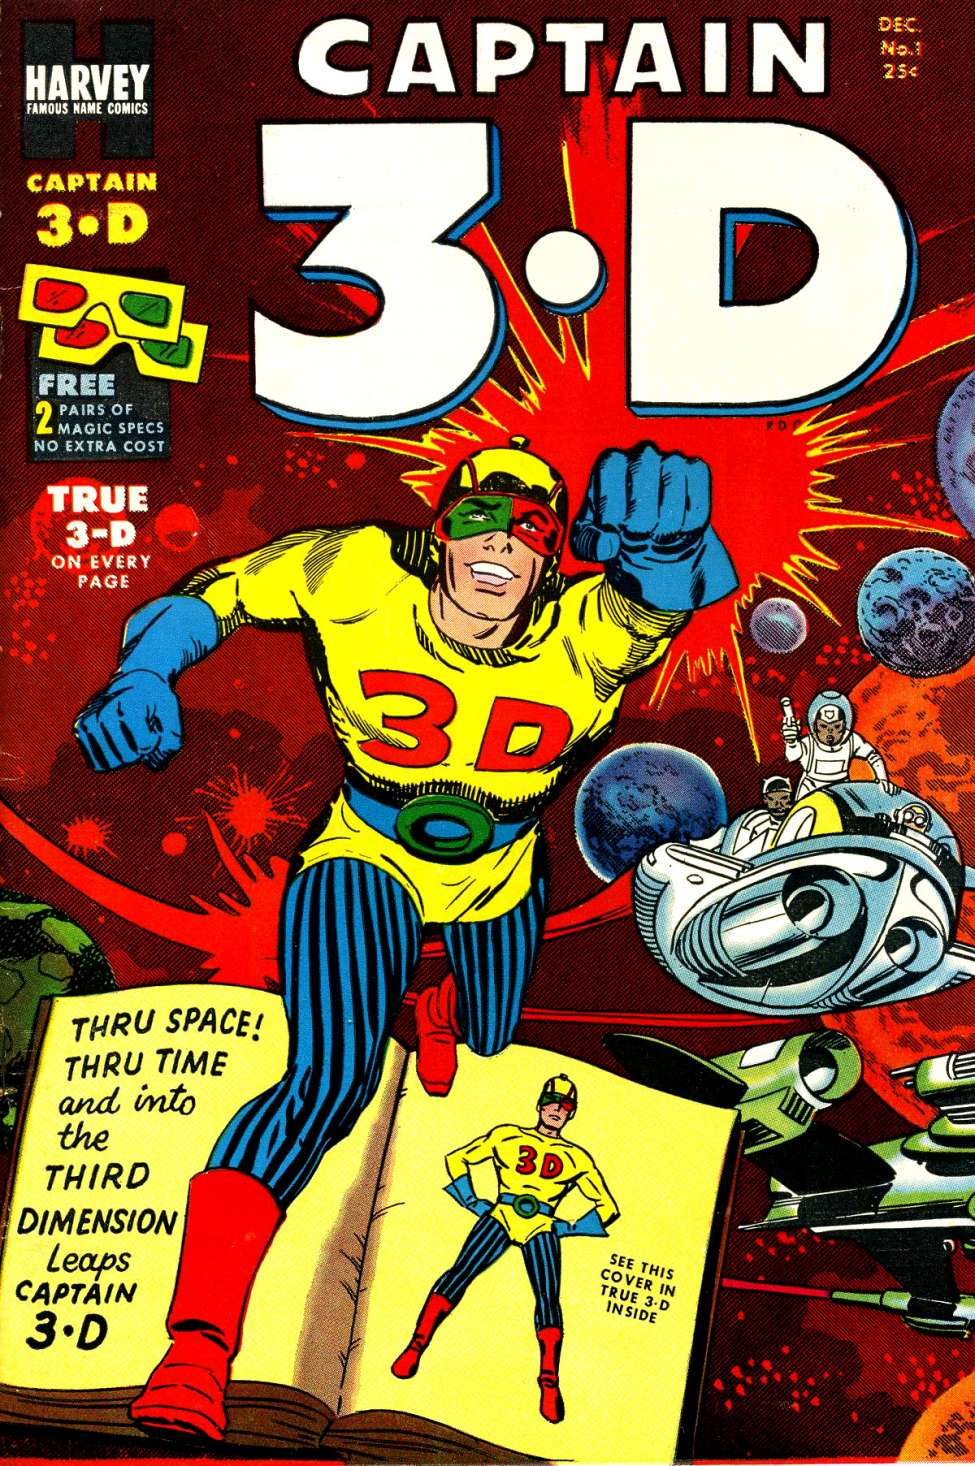 Comic Book Cover For Captain 3-D #1 - Version 3